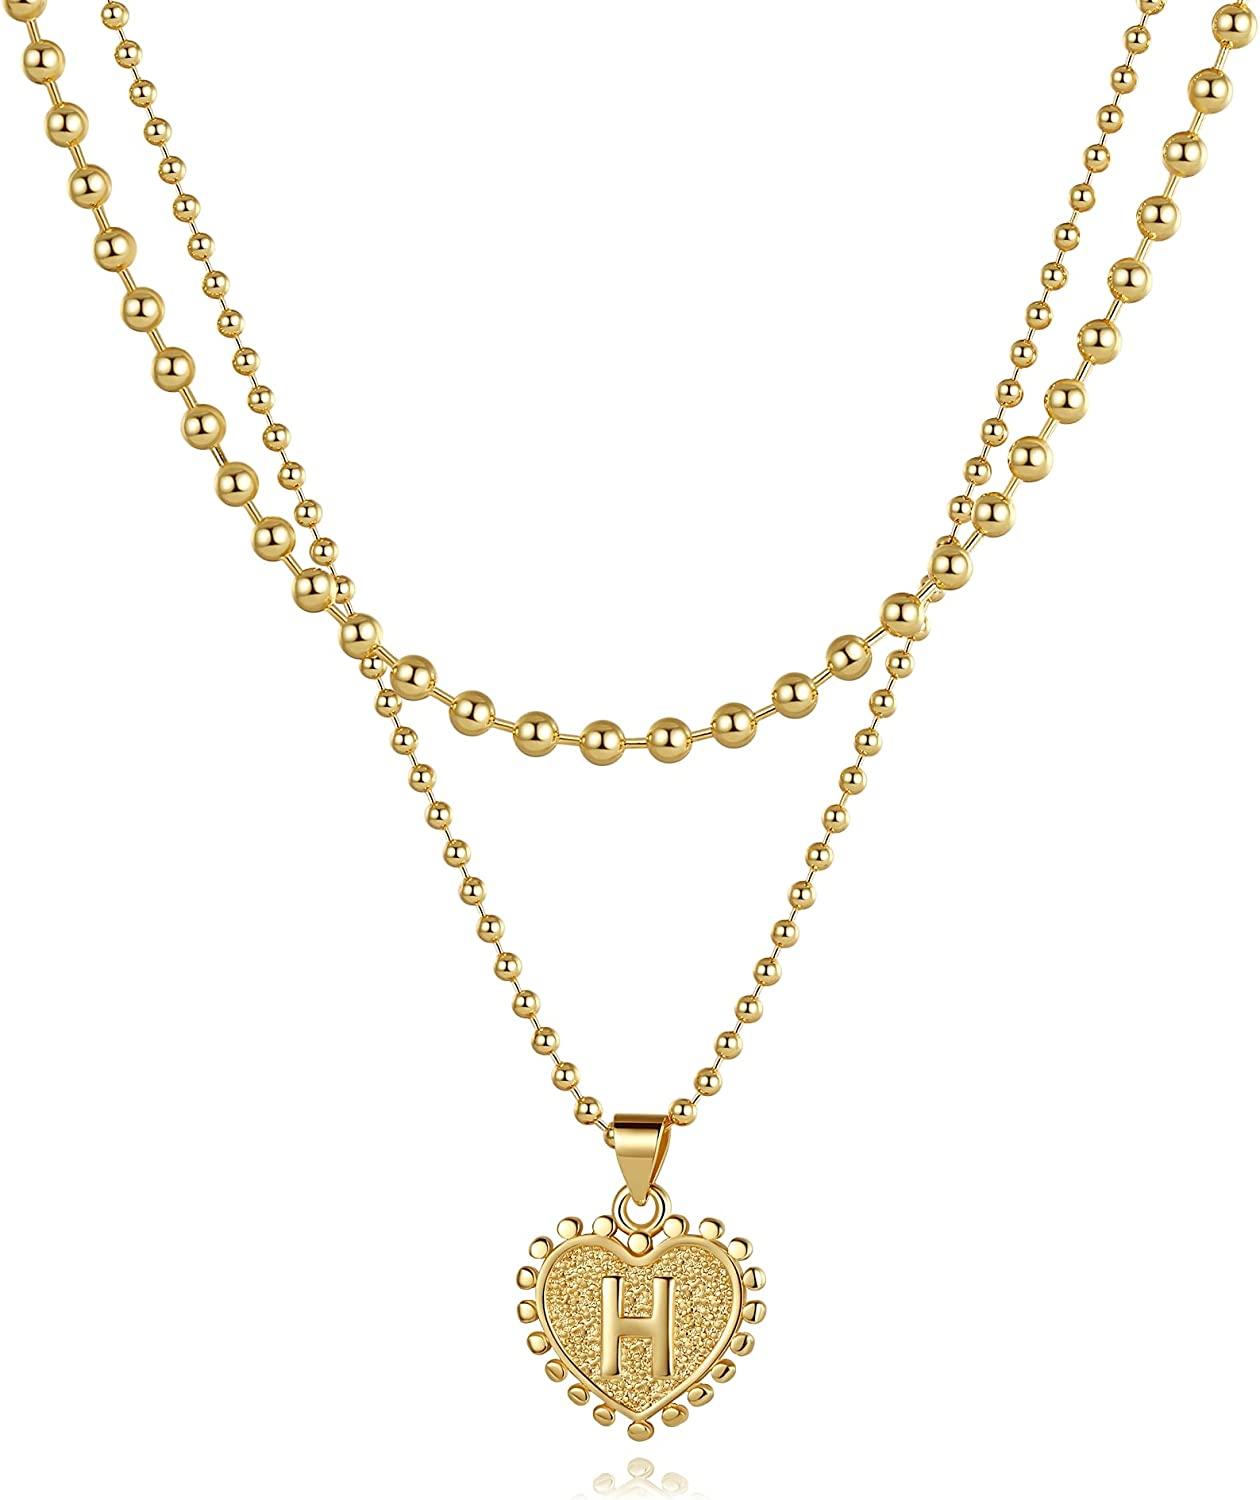 SHOWNII Brand new Max 68% OFF Layered Gold Necklaces for Women Heart 1 Pendant Initial